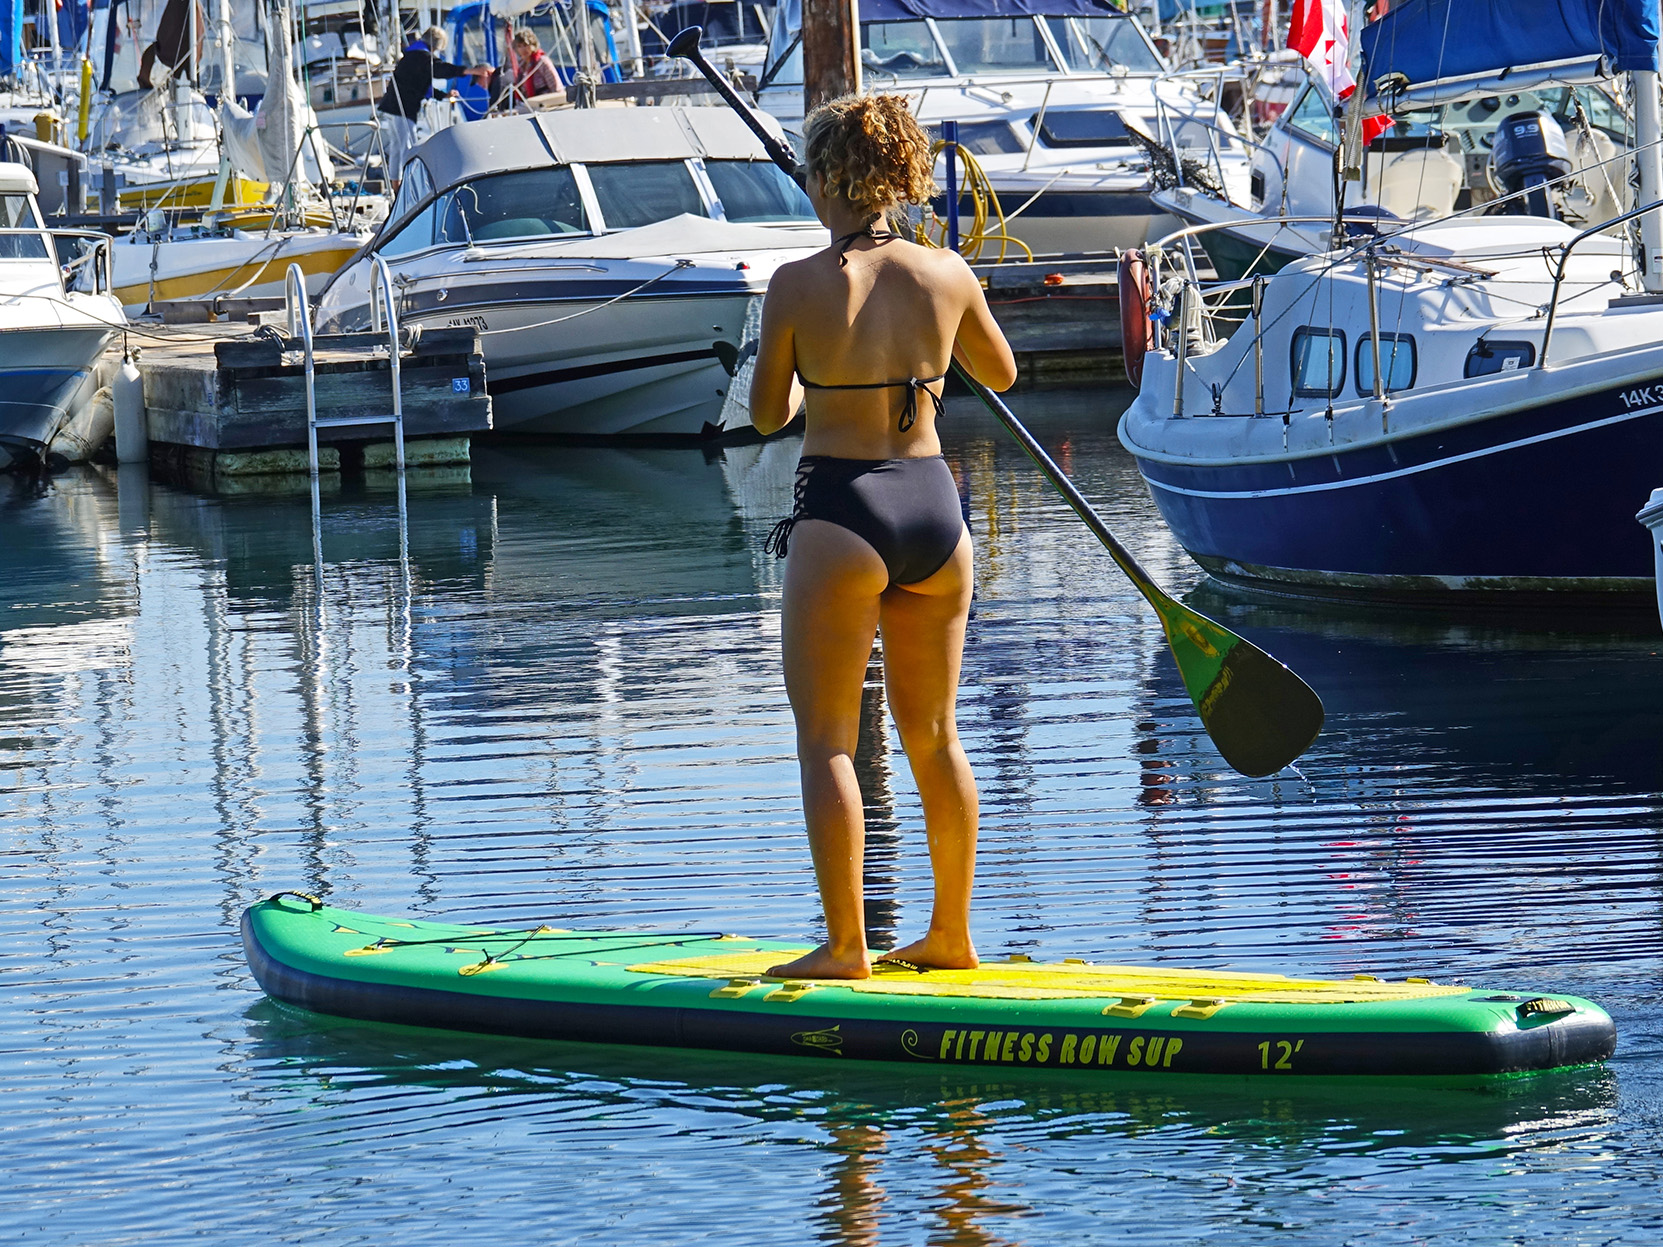 oar-board-stand-up-paddle-board-rower-whitehall-rowing-and-sail-DSC09681-Kess-Blog